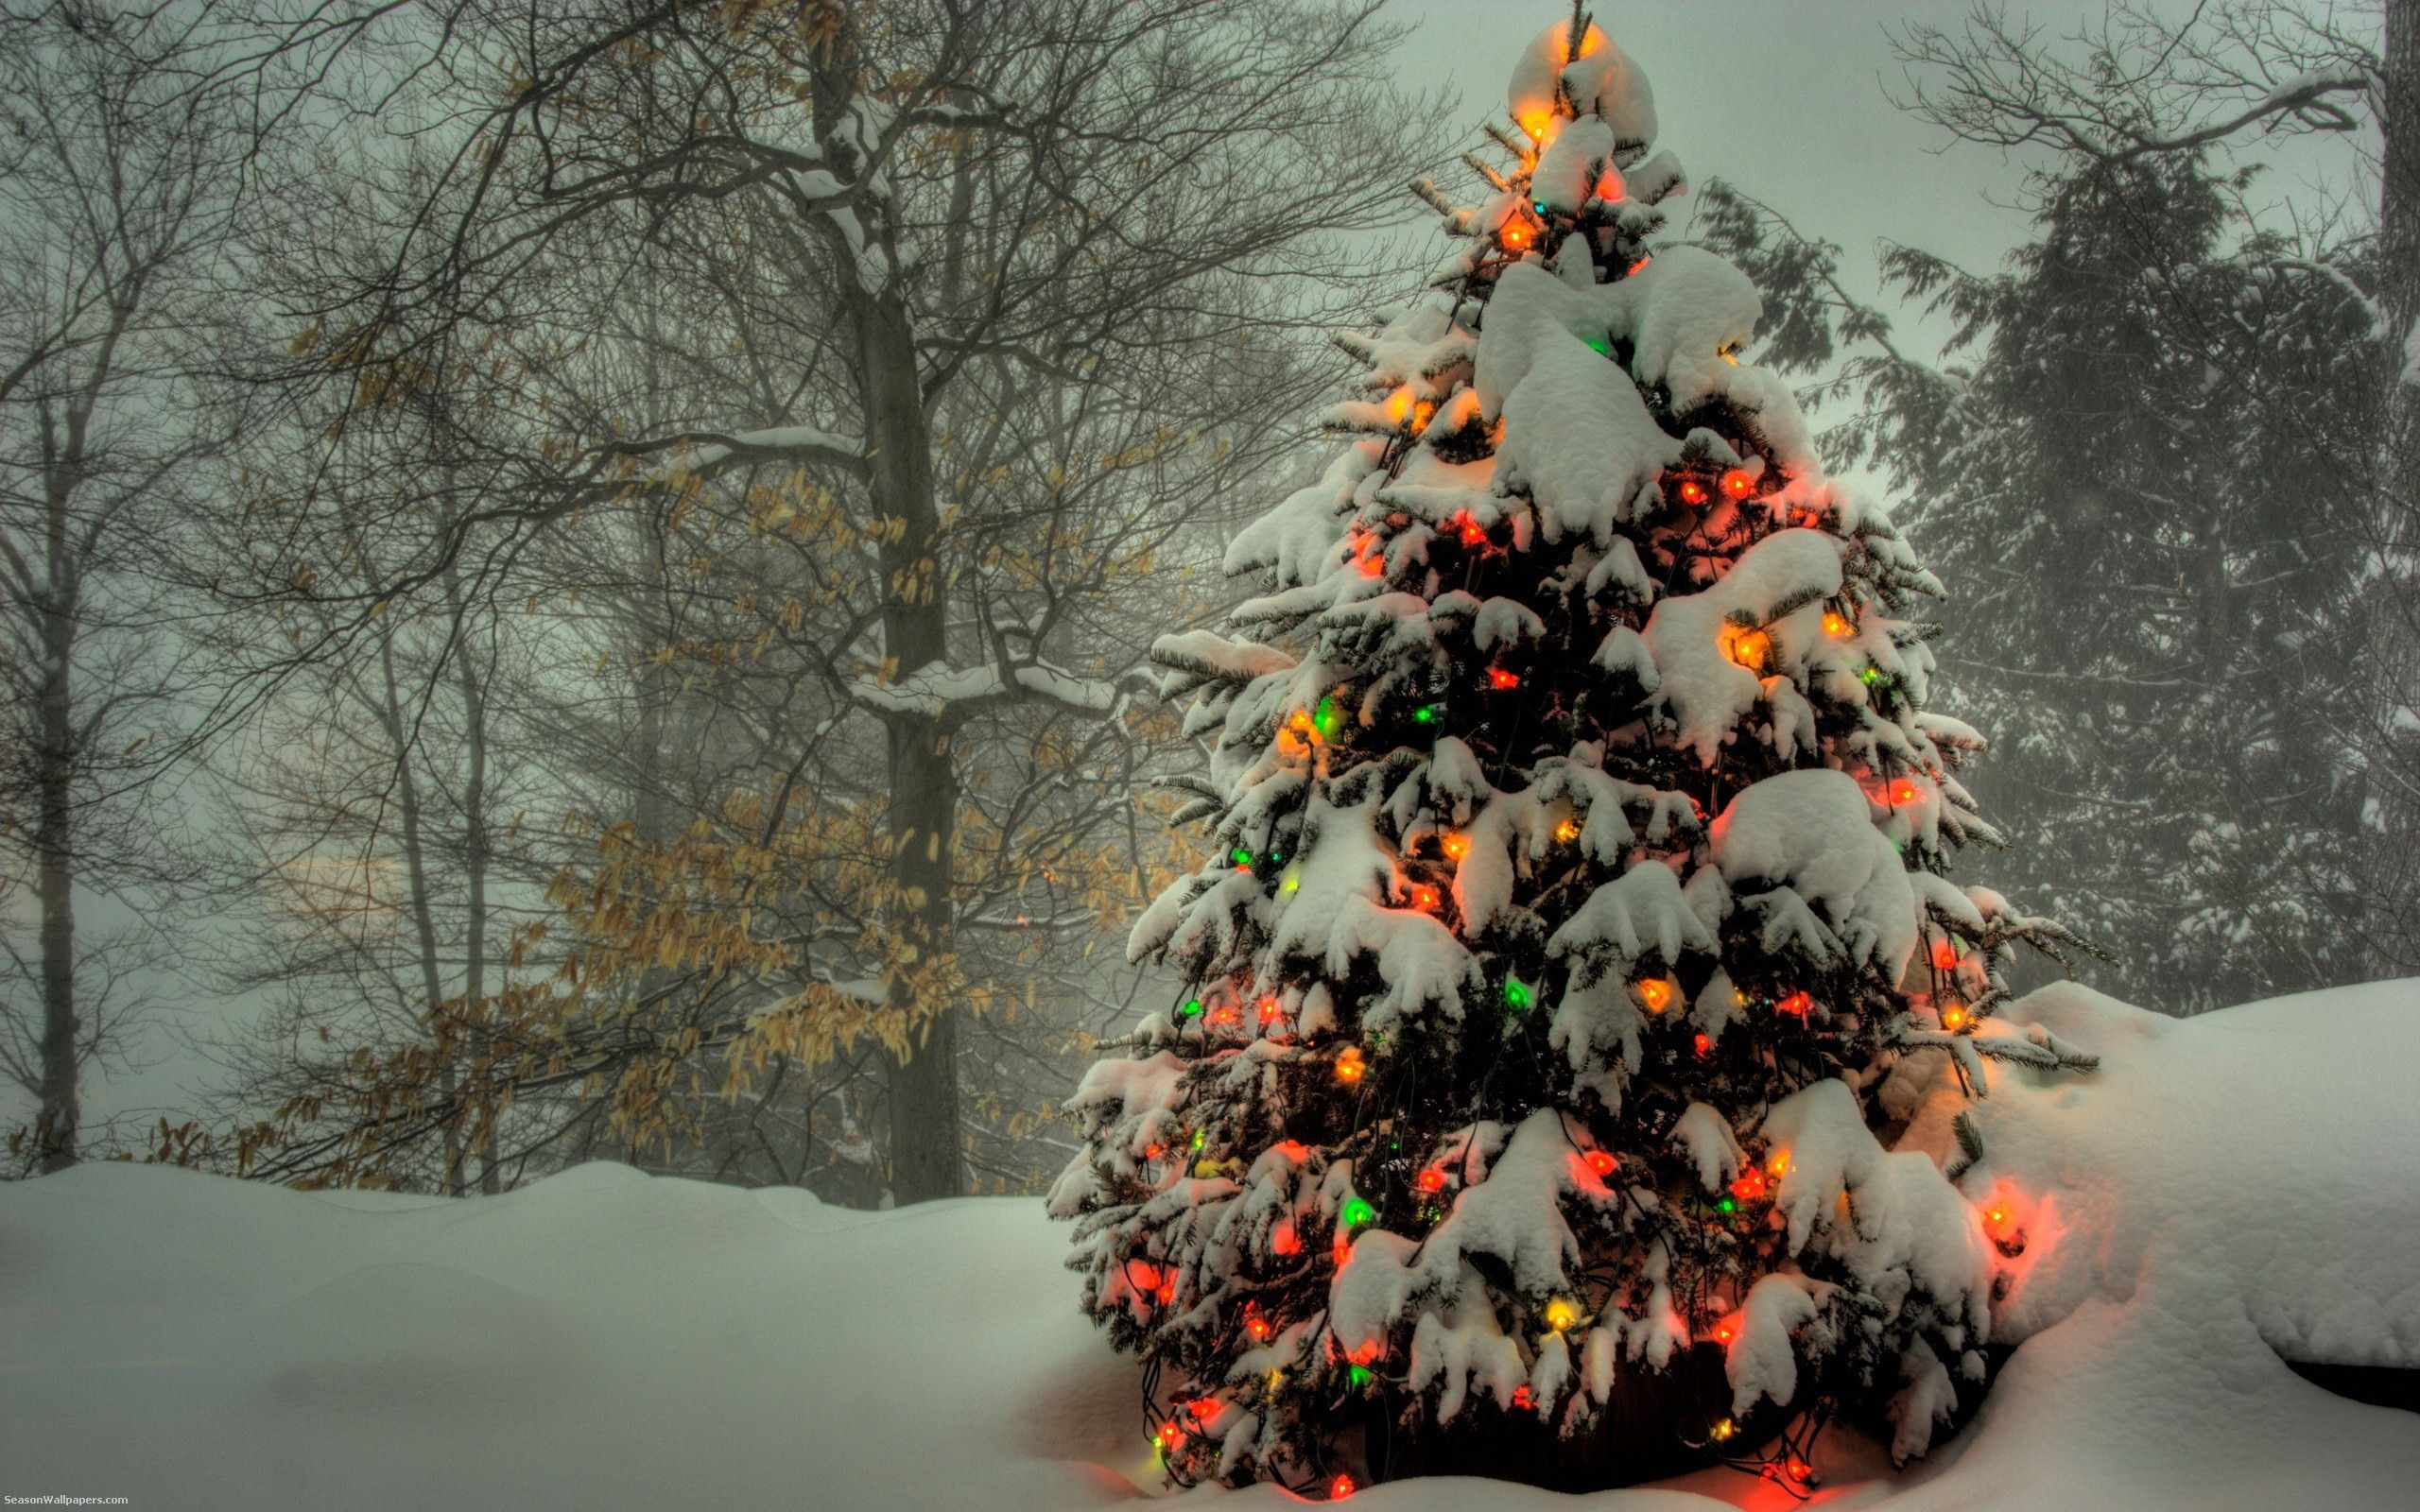 Christmas Bigpic Wallpaper Forest Covered Tree Wallpapers Snow Christmas Tree Wallpaper Christmas Landscape Christmas Tree Outside